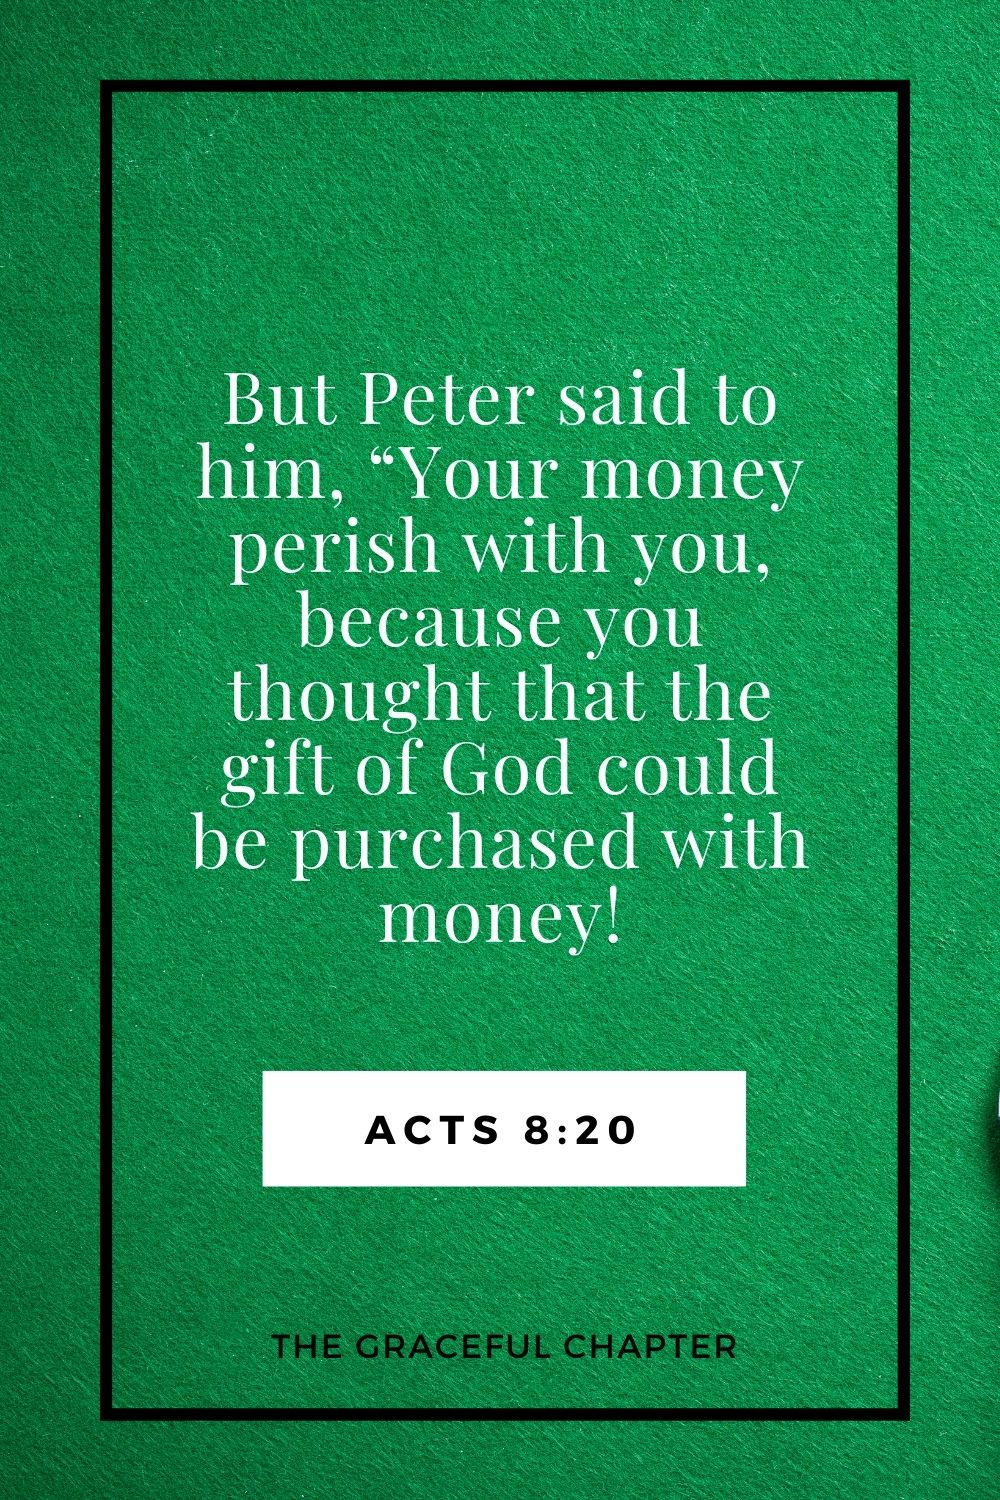 """But Peter said to him, """"Your money perish with you, because you thought that the gift of God could be purchased with money! Acts 8:20"""